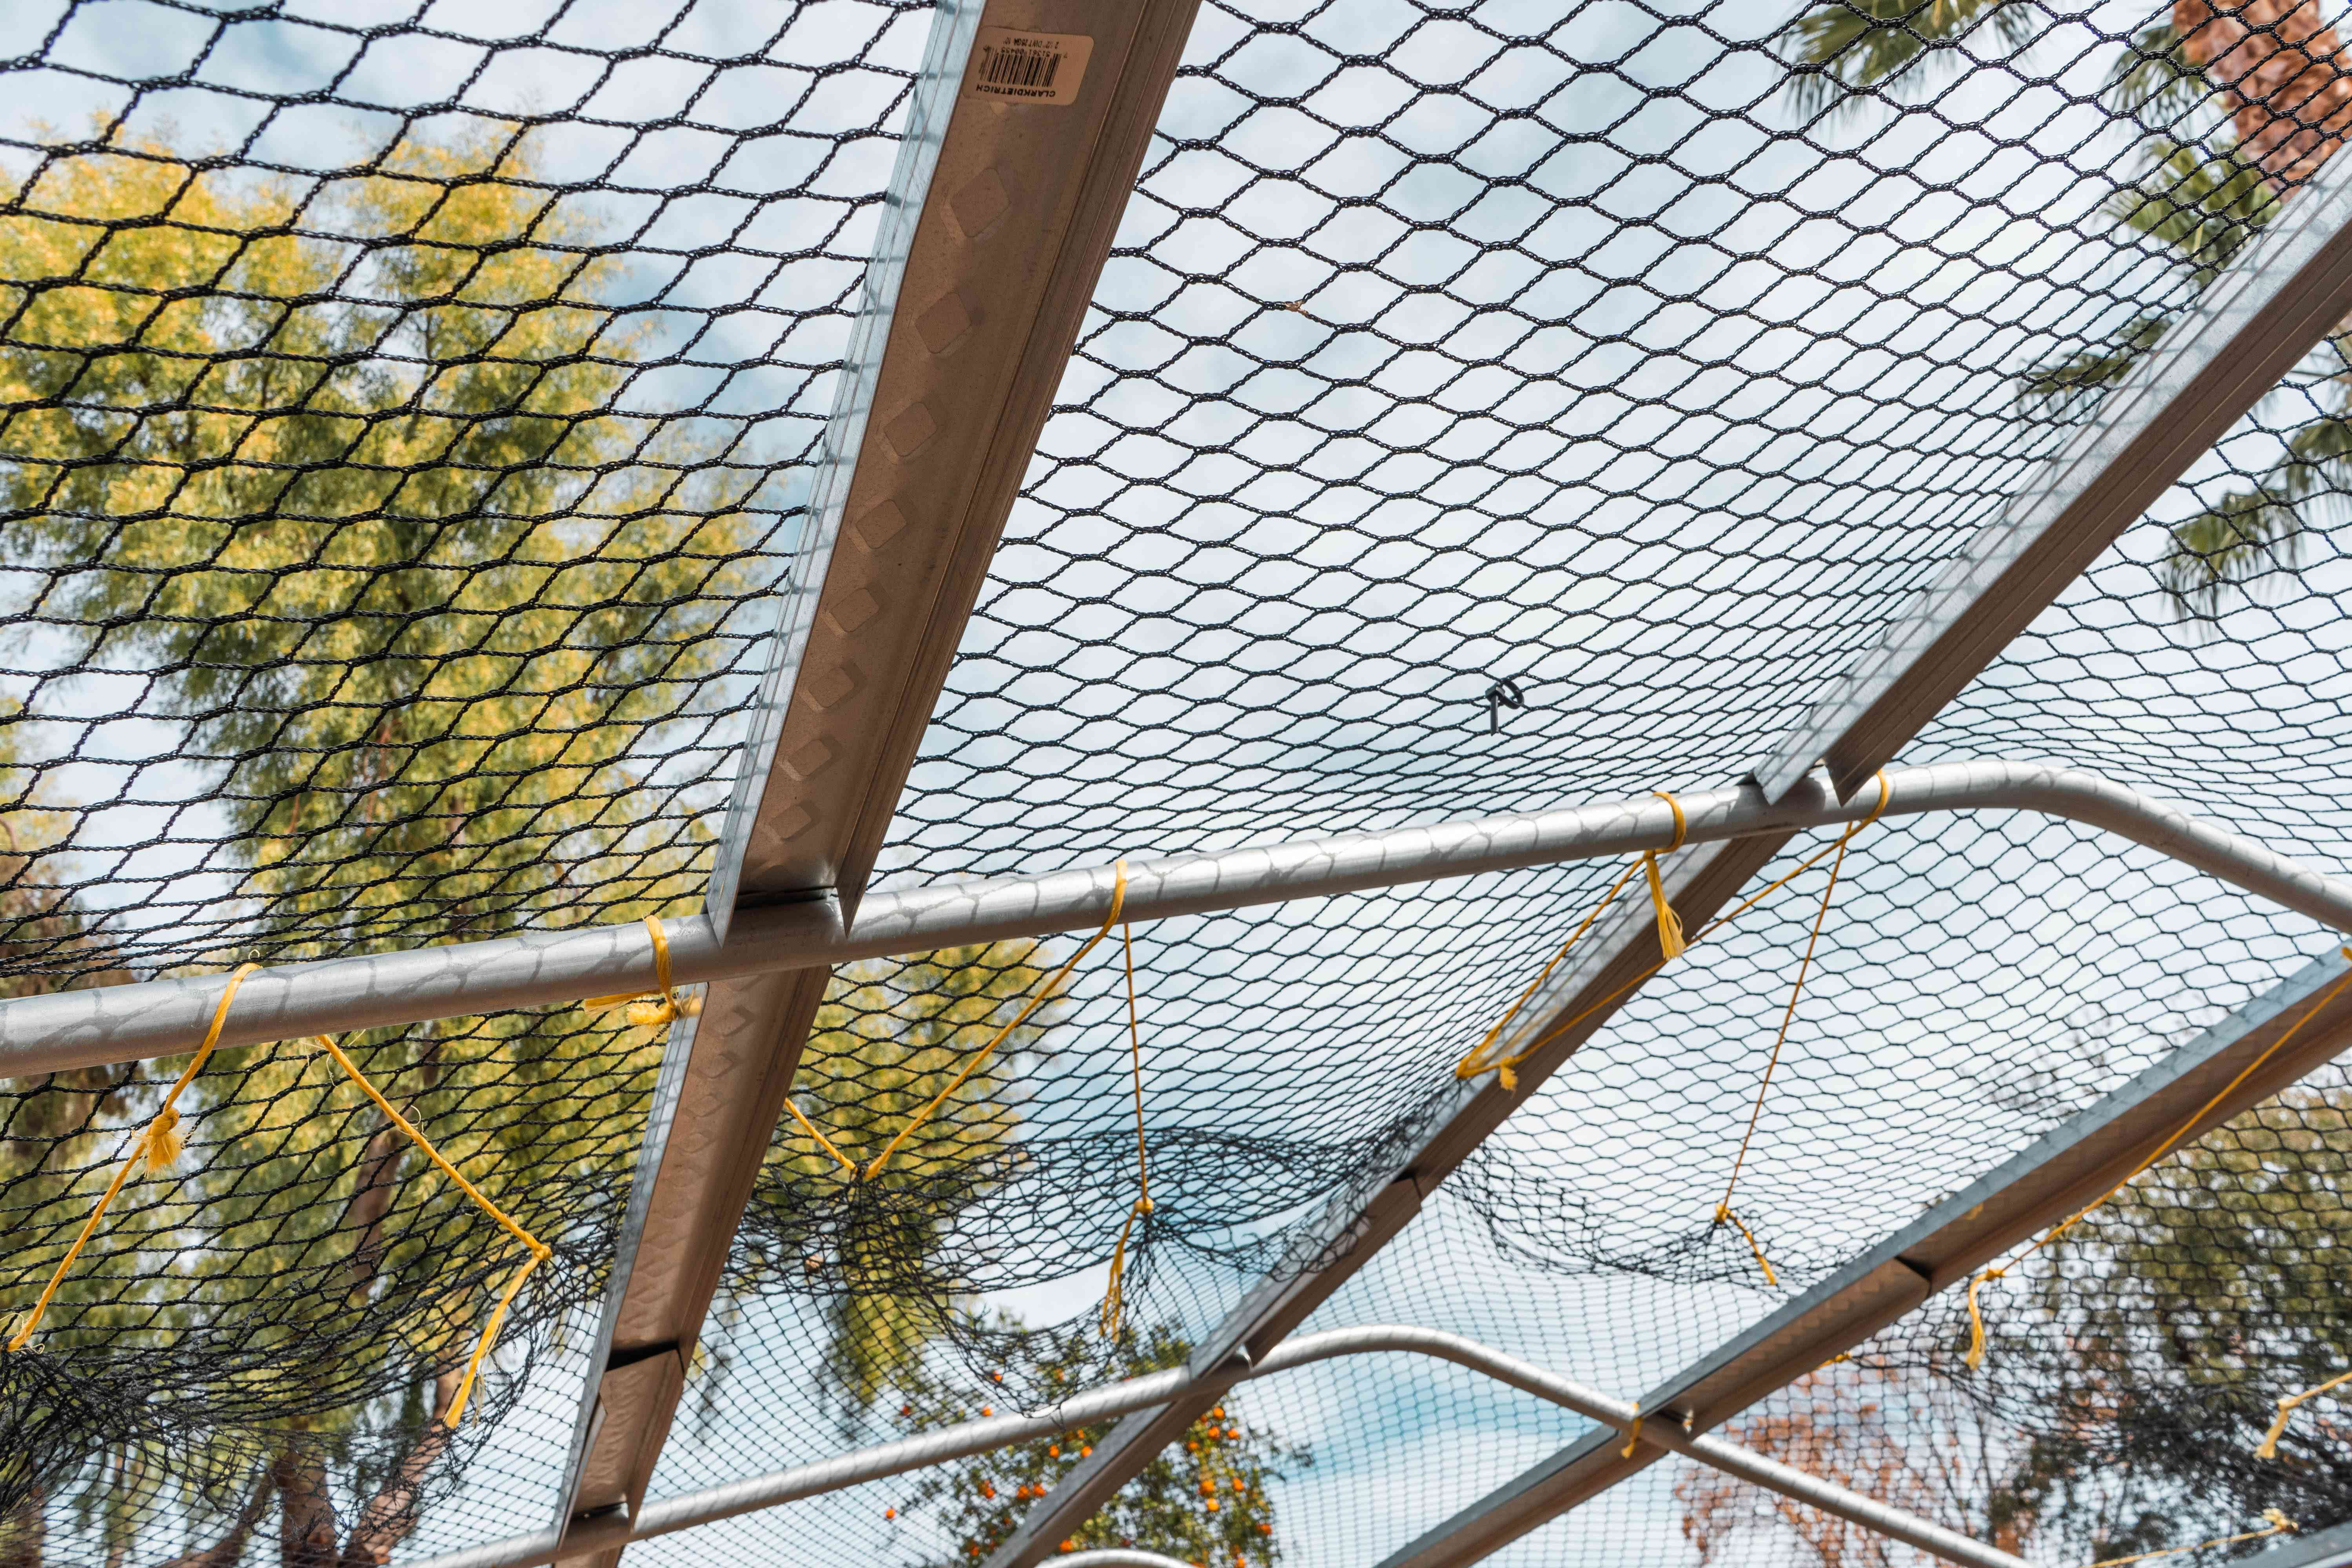 Aviary netting covering metal scaffolding over chicken coop